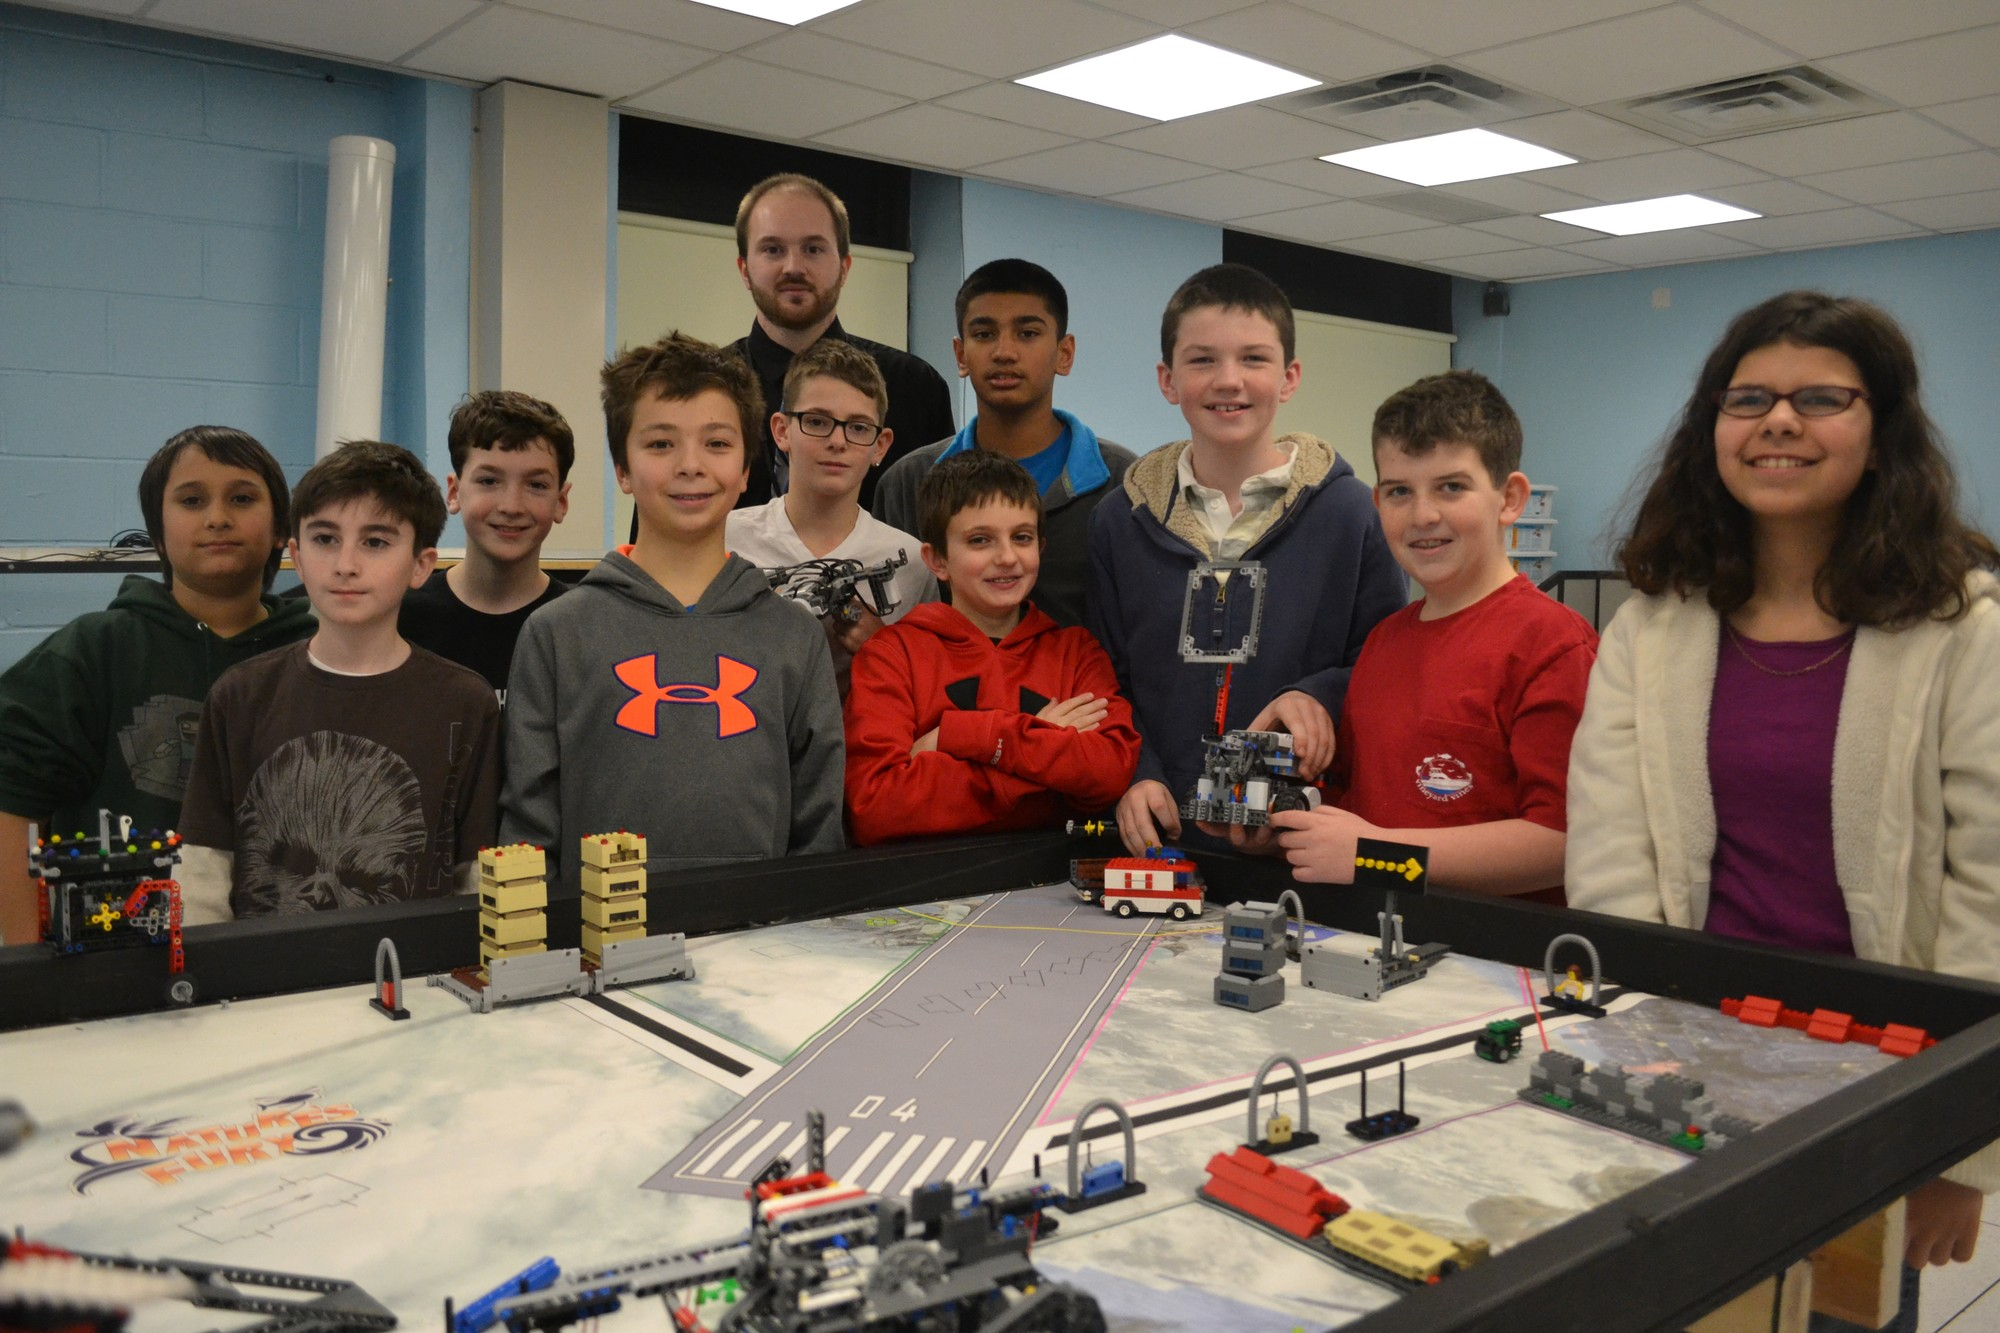 The South Side Middle School Robotics club placed in the Lego League Robotics Competition.